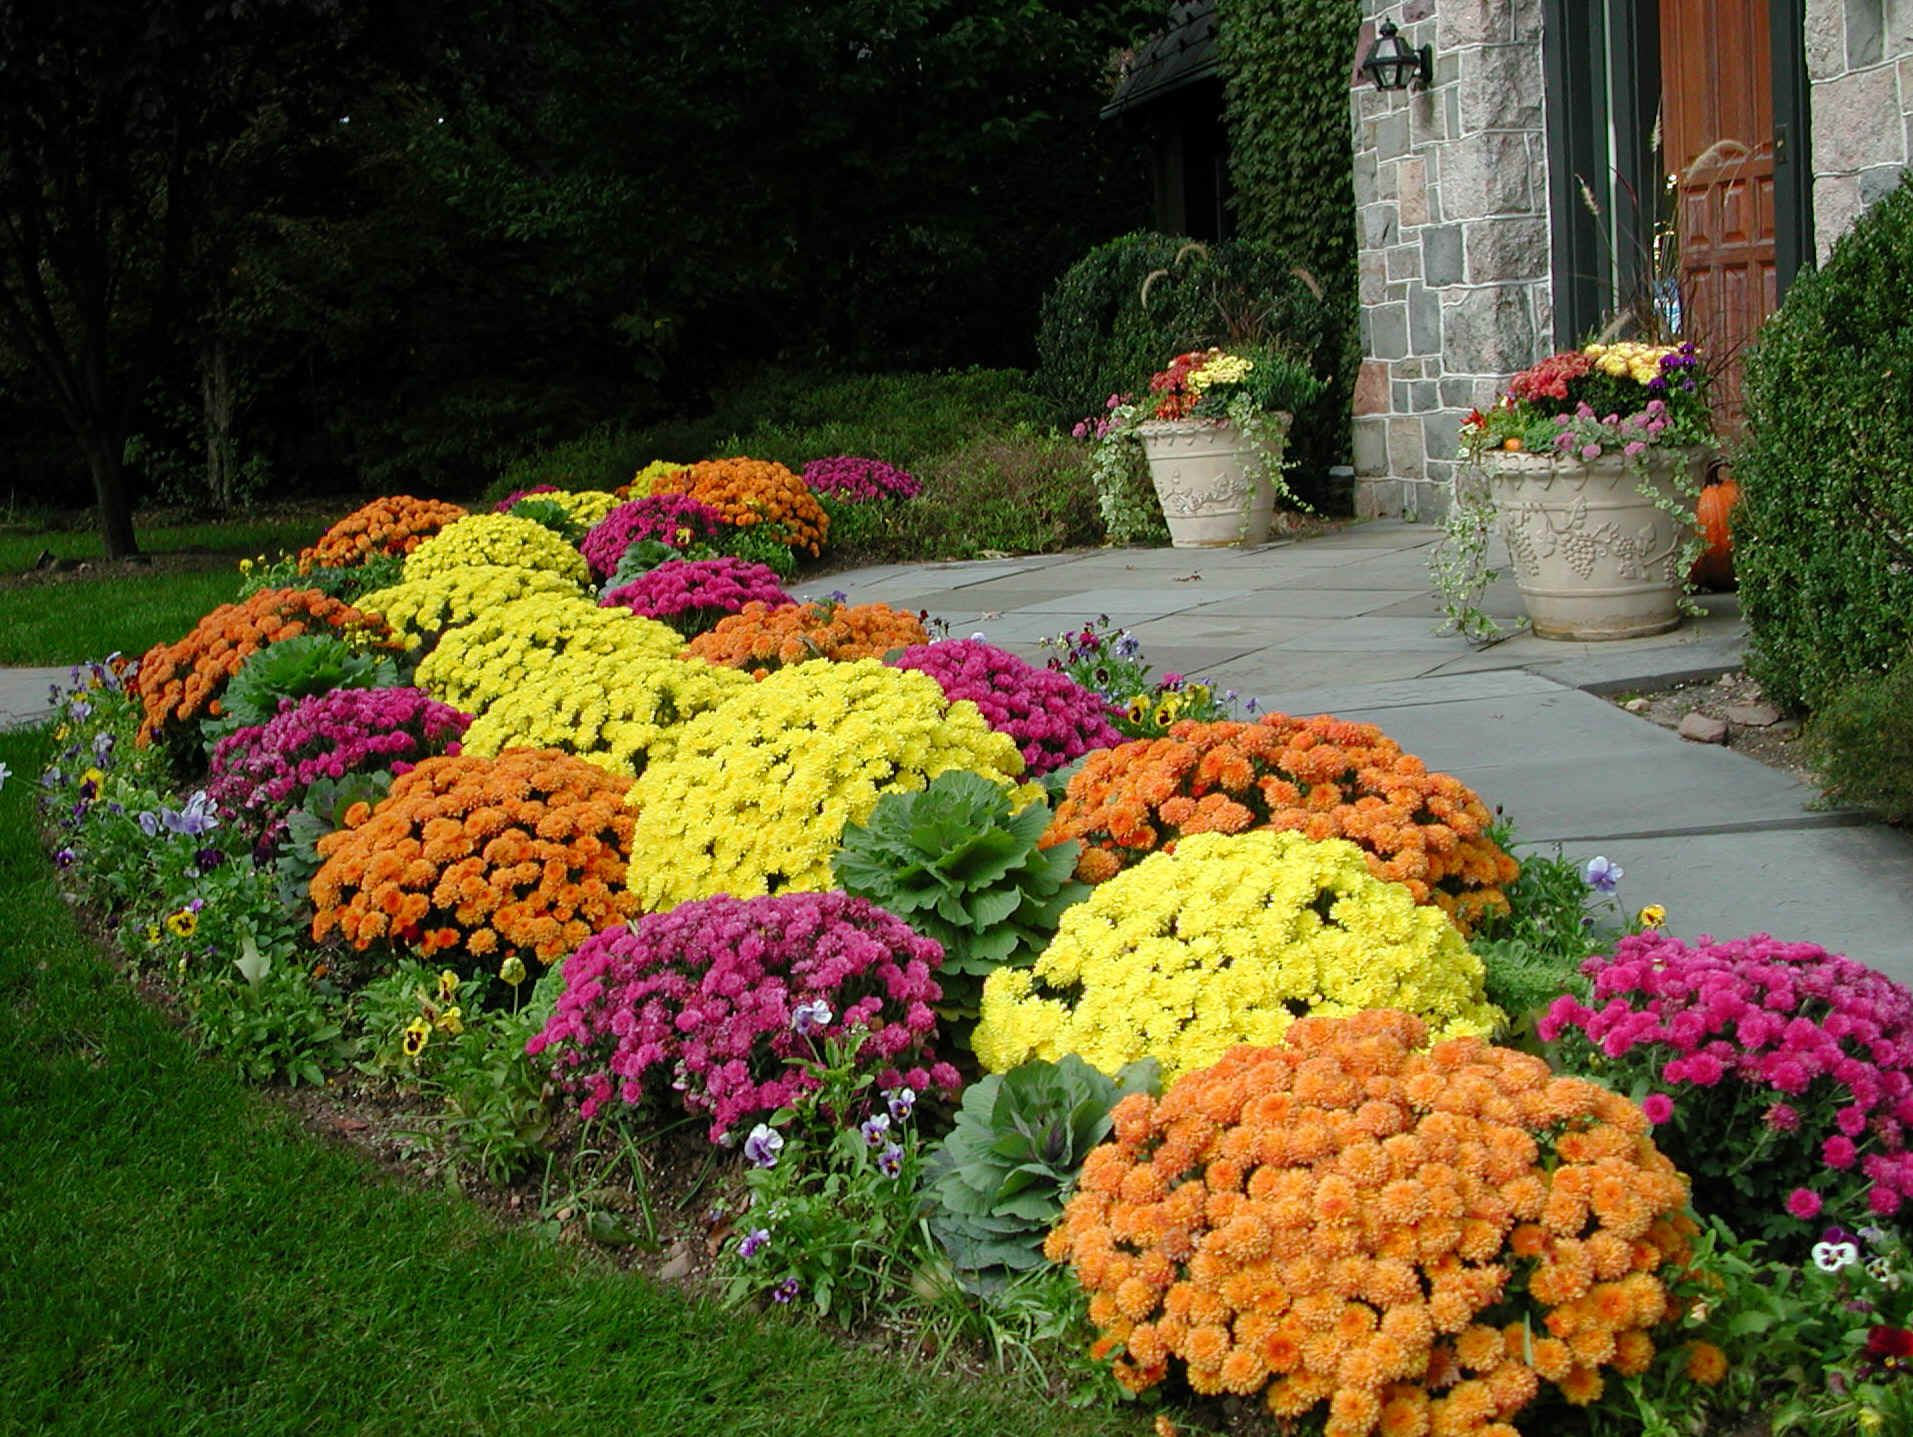 Year round plants for flower beds - Beautiful Mums For Front Yard Landscaping By Sidewalk Just Dig A Hold And Put The Entire Pot In It For Quick Work Pin I Love The Fall Colors That Can Be